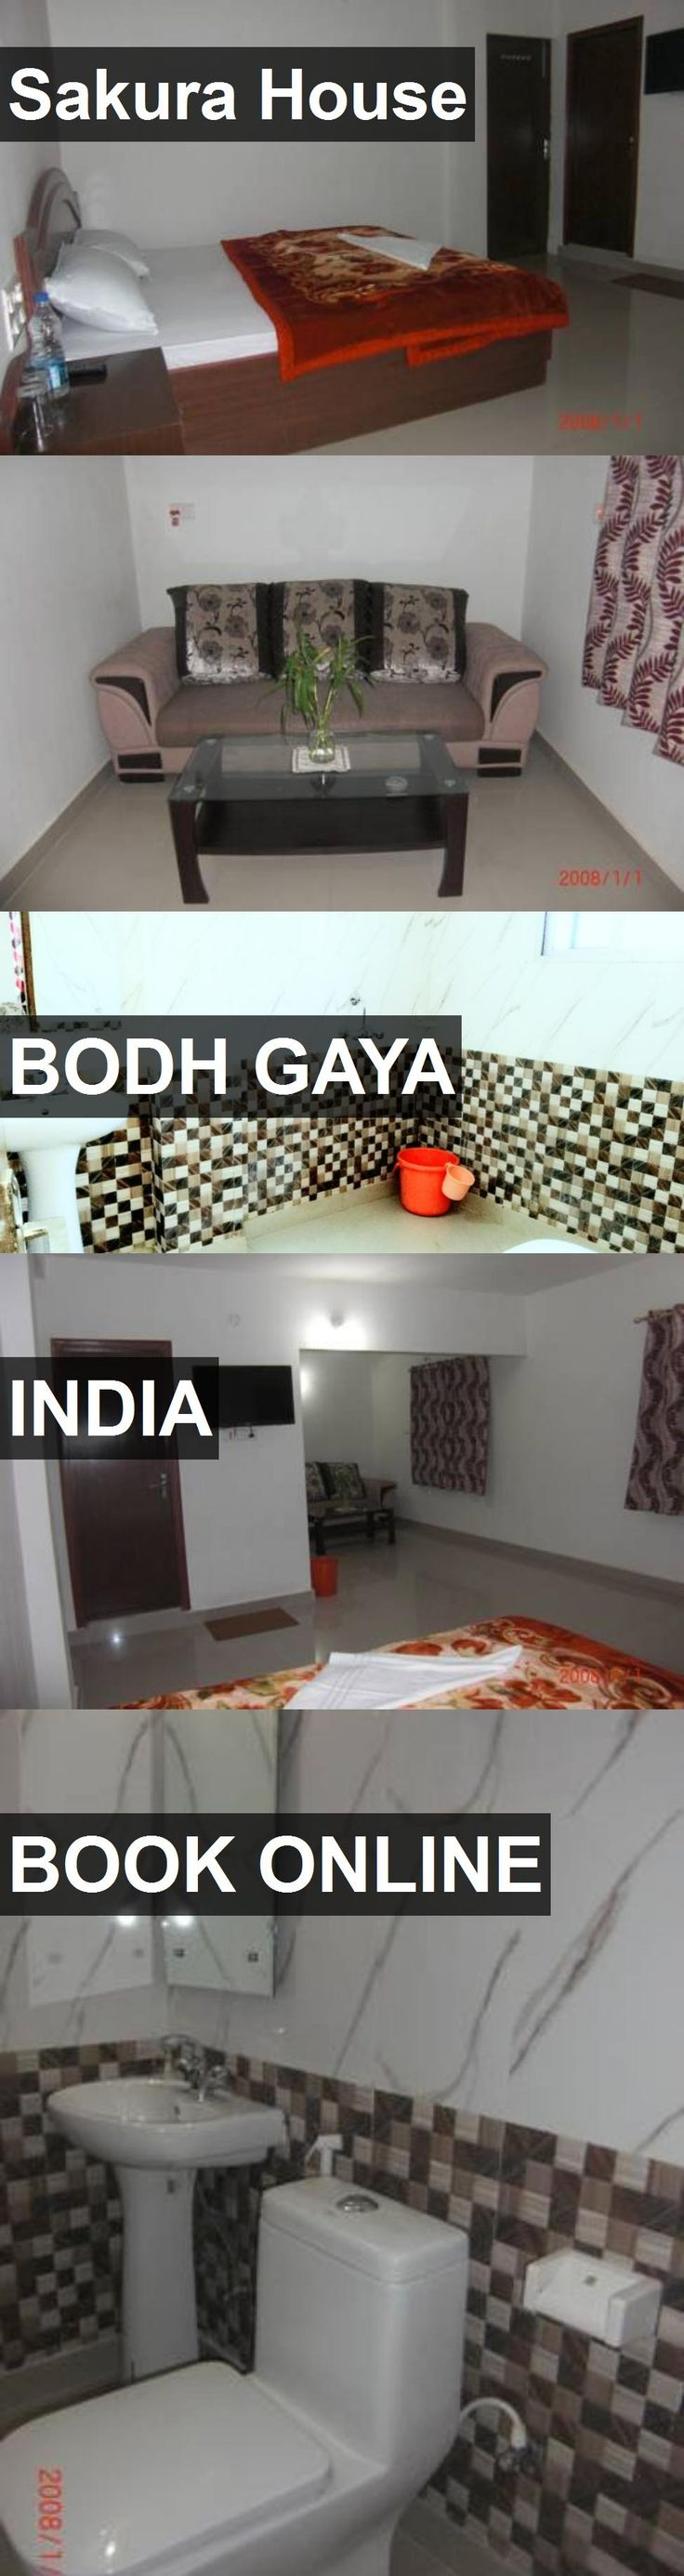 Hotel Sakura House in Bodh Gaya, India. For more information, photos, reviews and best prices please follow the link. #India #BodhGaya #travel #vacation #hotel